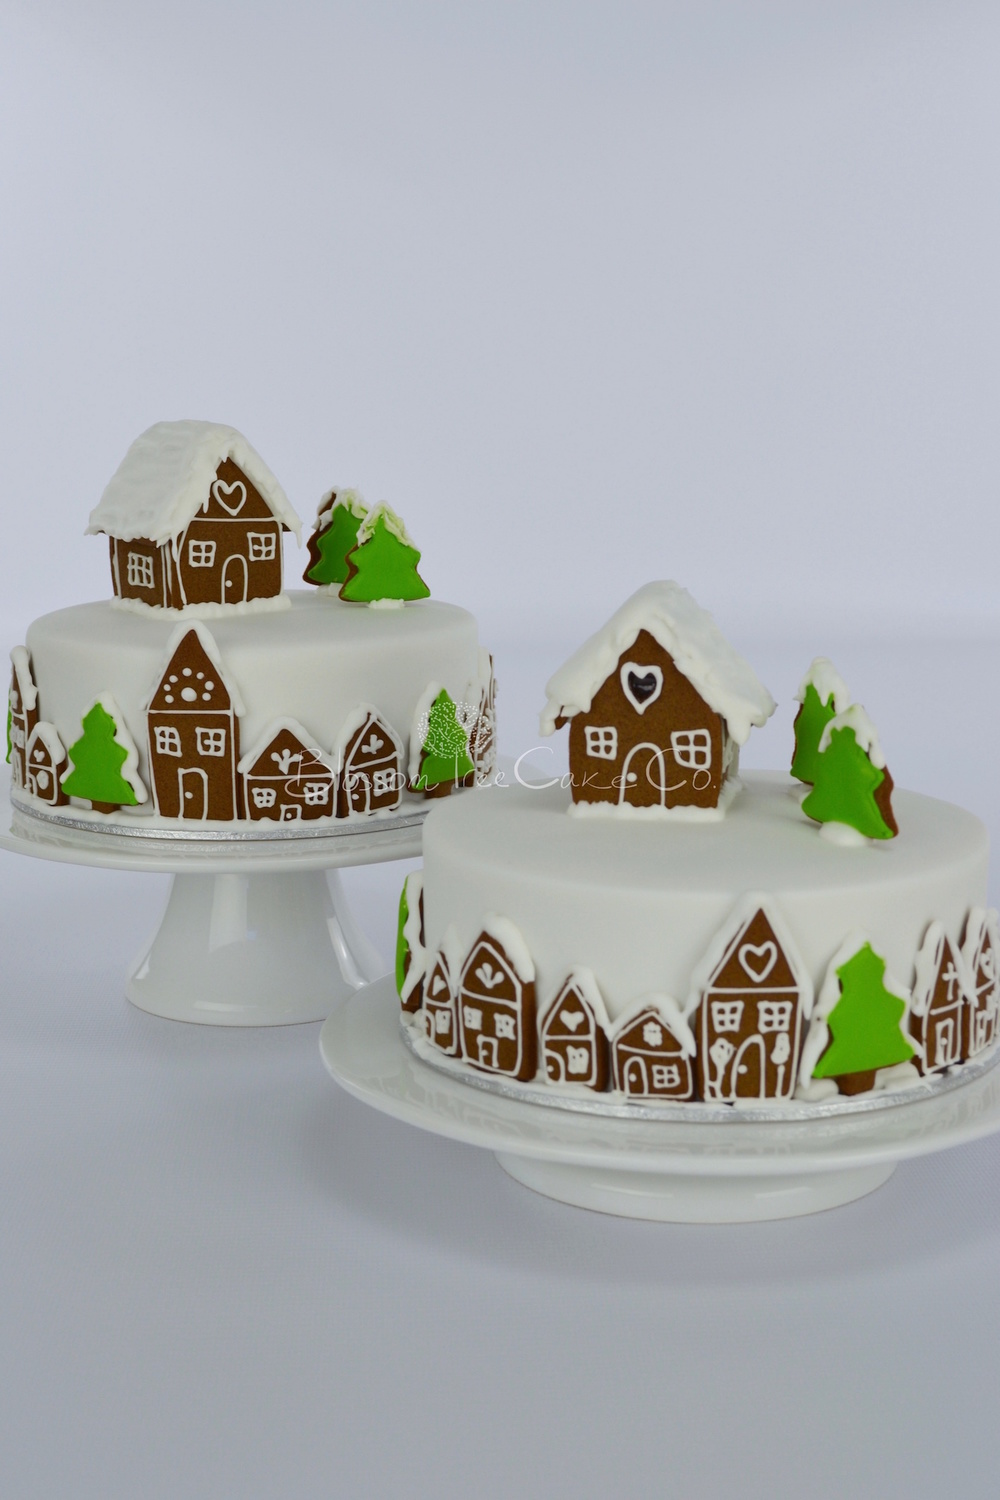 Gingerbread Village Christmas cake by Blossom Tree Cake Co Harrogate North Yorkshire.jpg